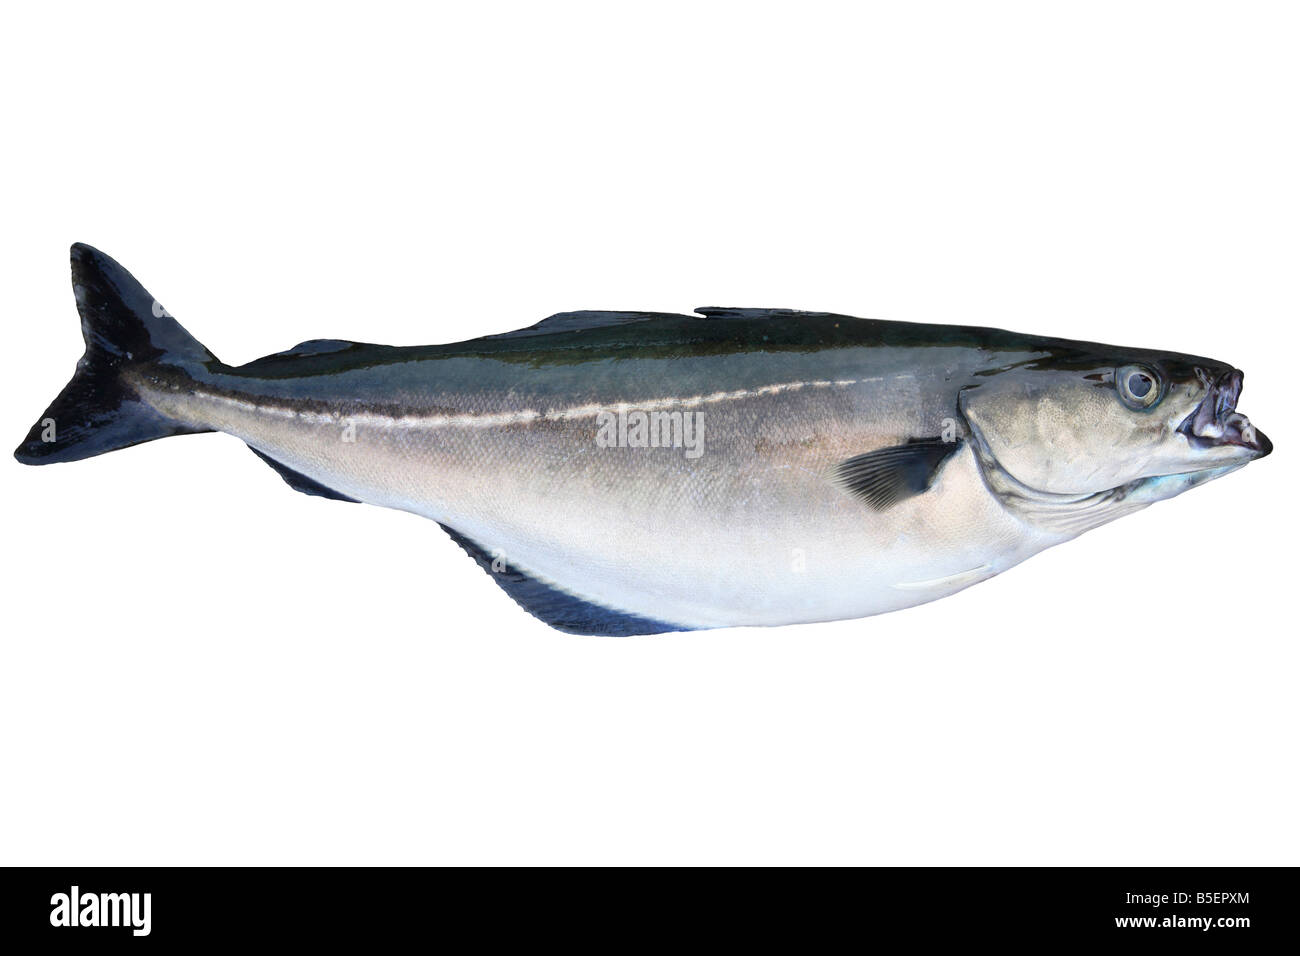 pollack, saithe, coalfish, Atlantic pollack, coley, Latin: Pollachius virens; caught in Iceland (cut-out) - Stock Image